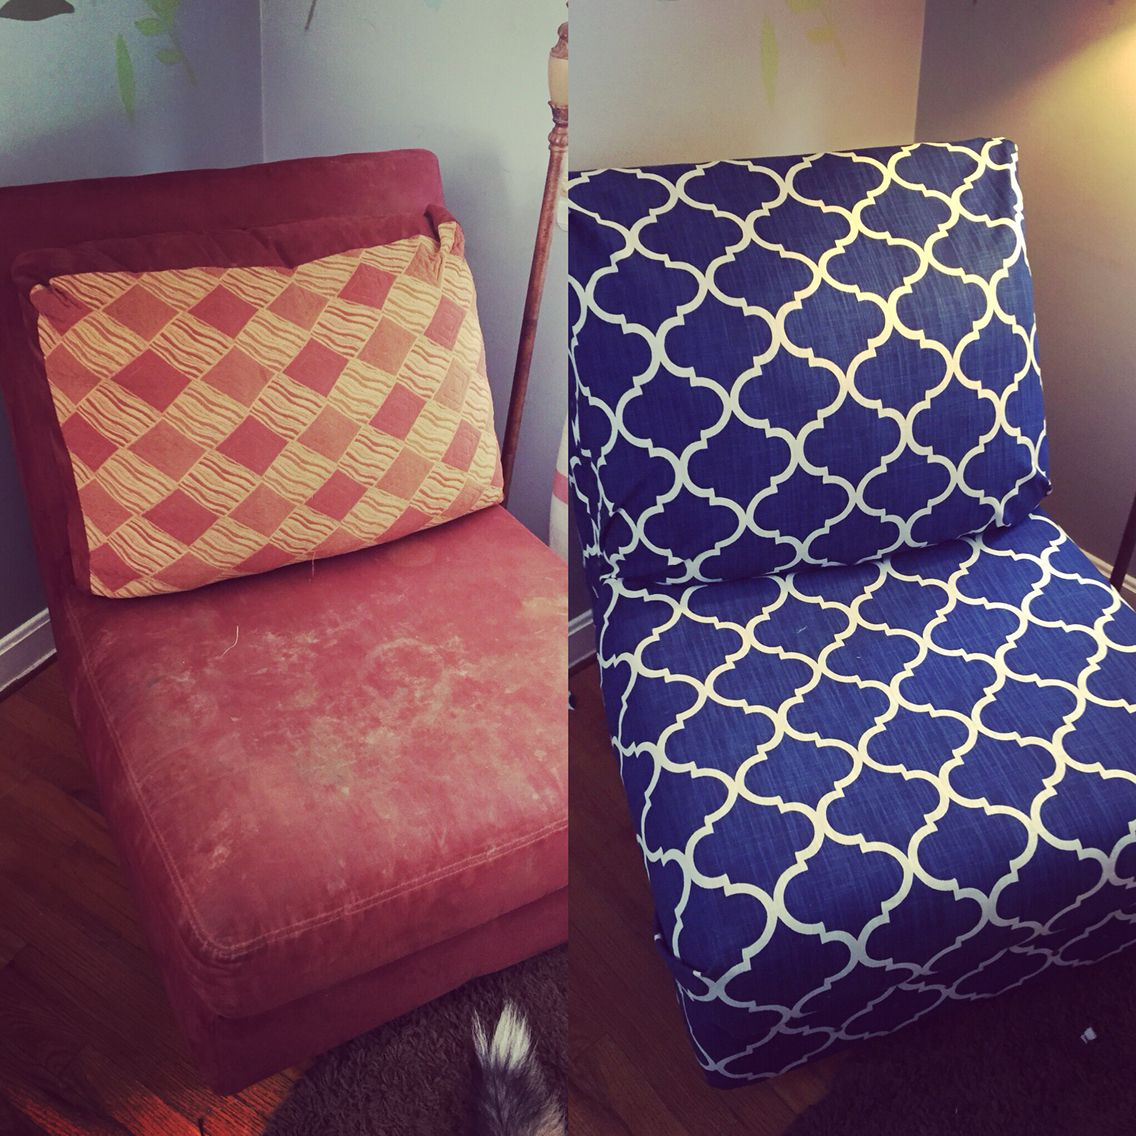 Diy reupholster armless chair in love with the result ❤ reupholsterchair